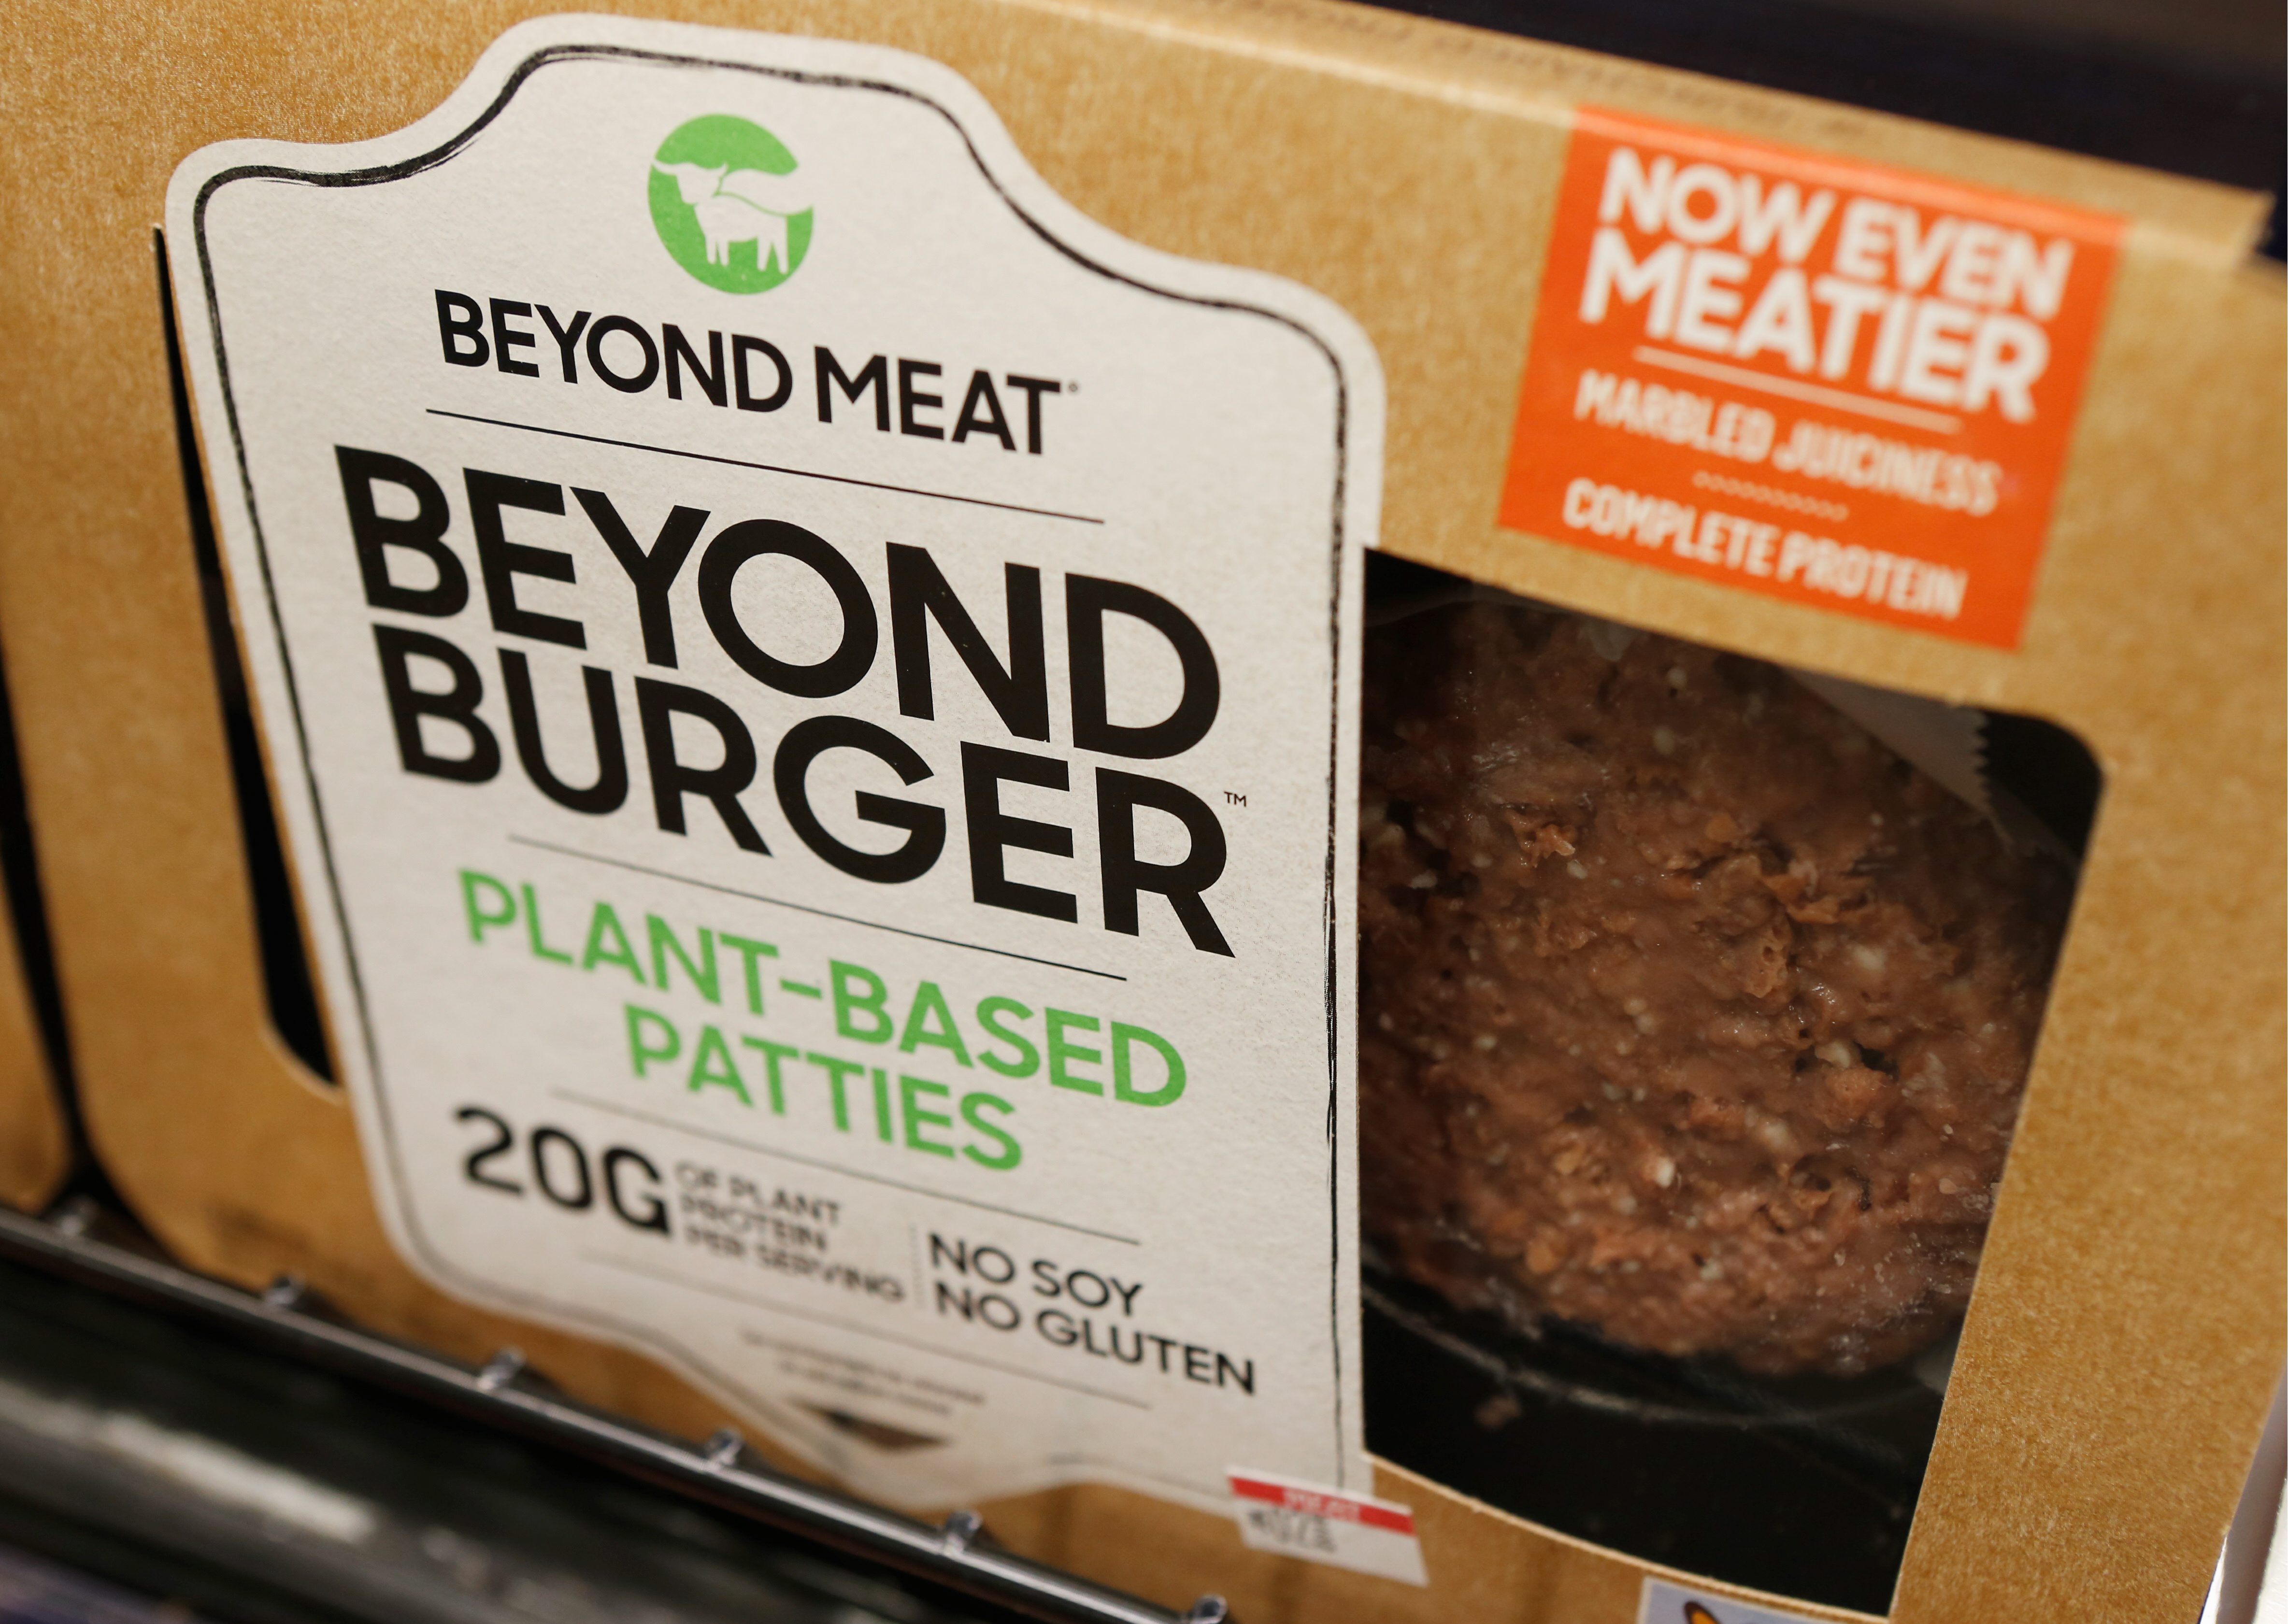 States beef up laws on 'misleading' food labels as fake meat, milk sales soar